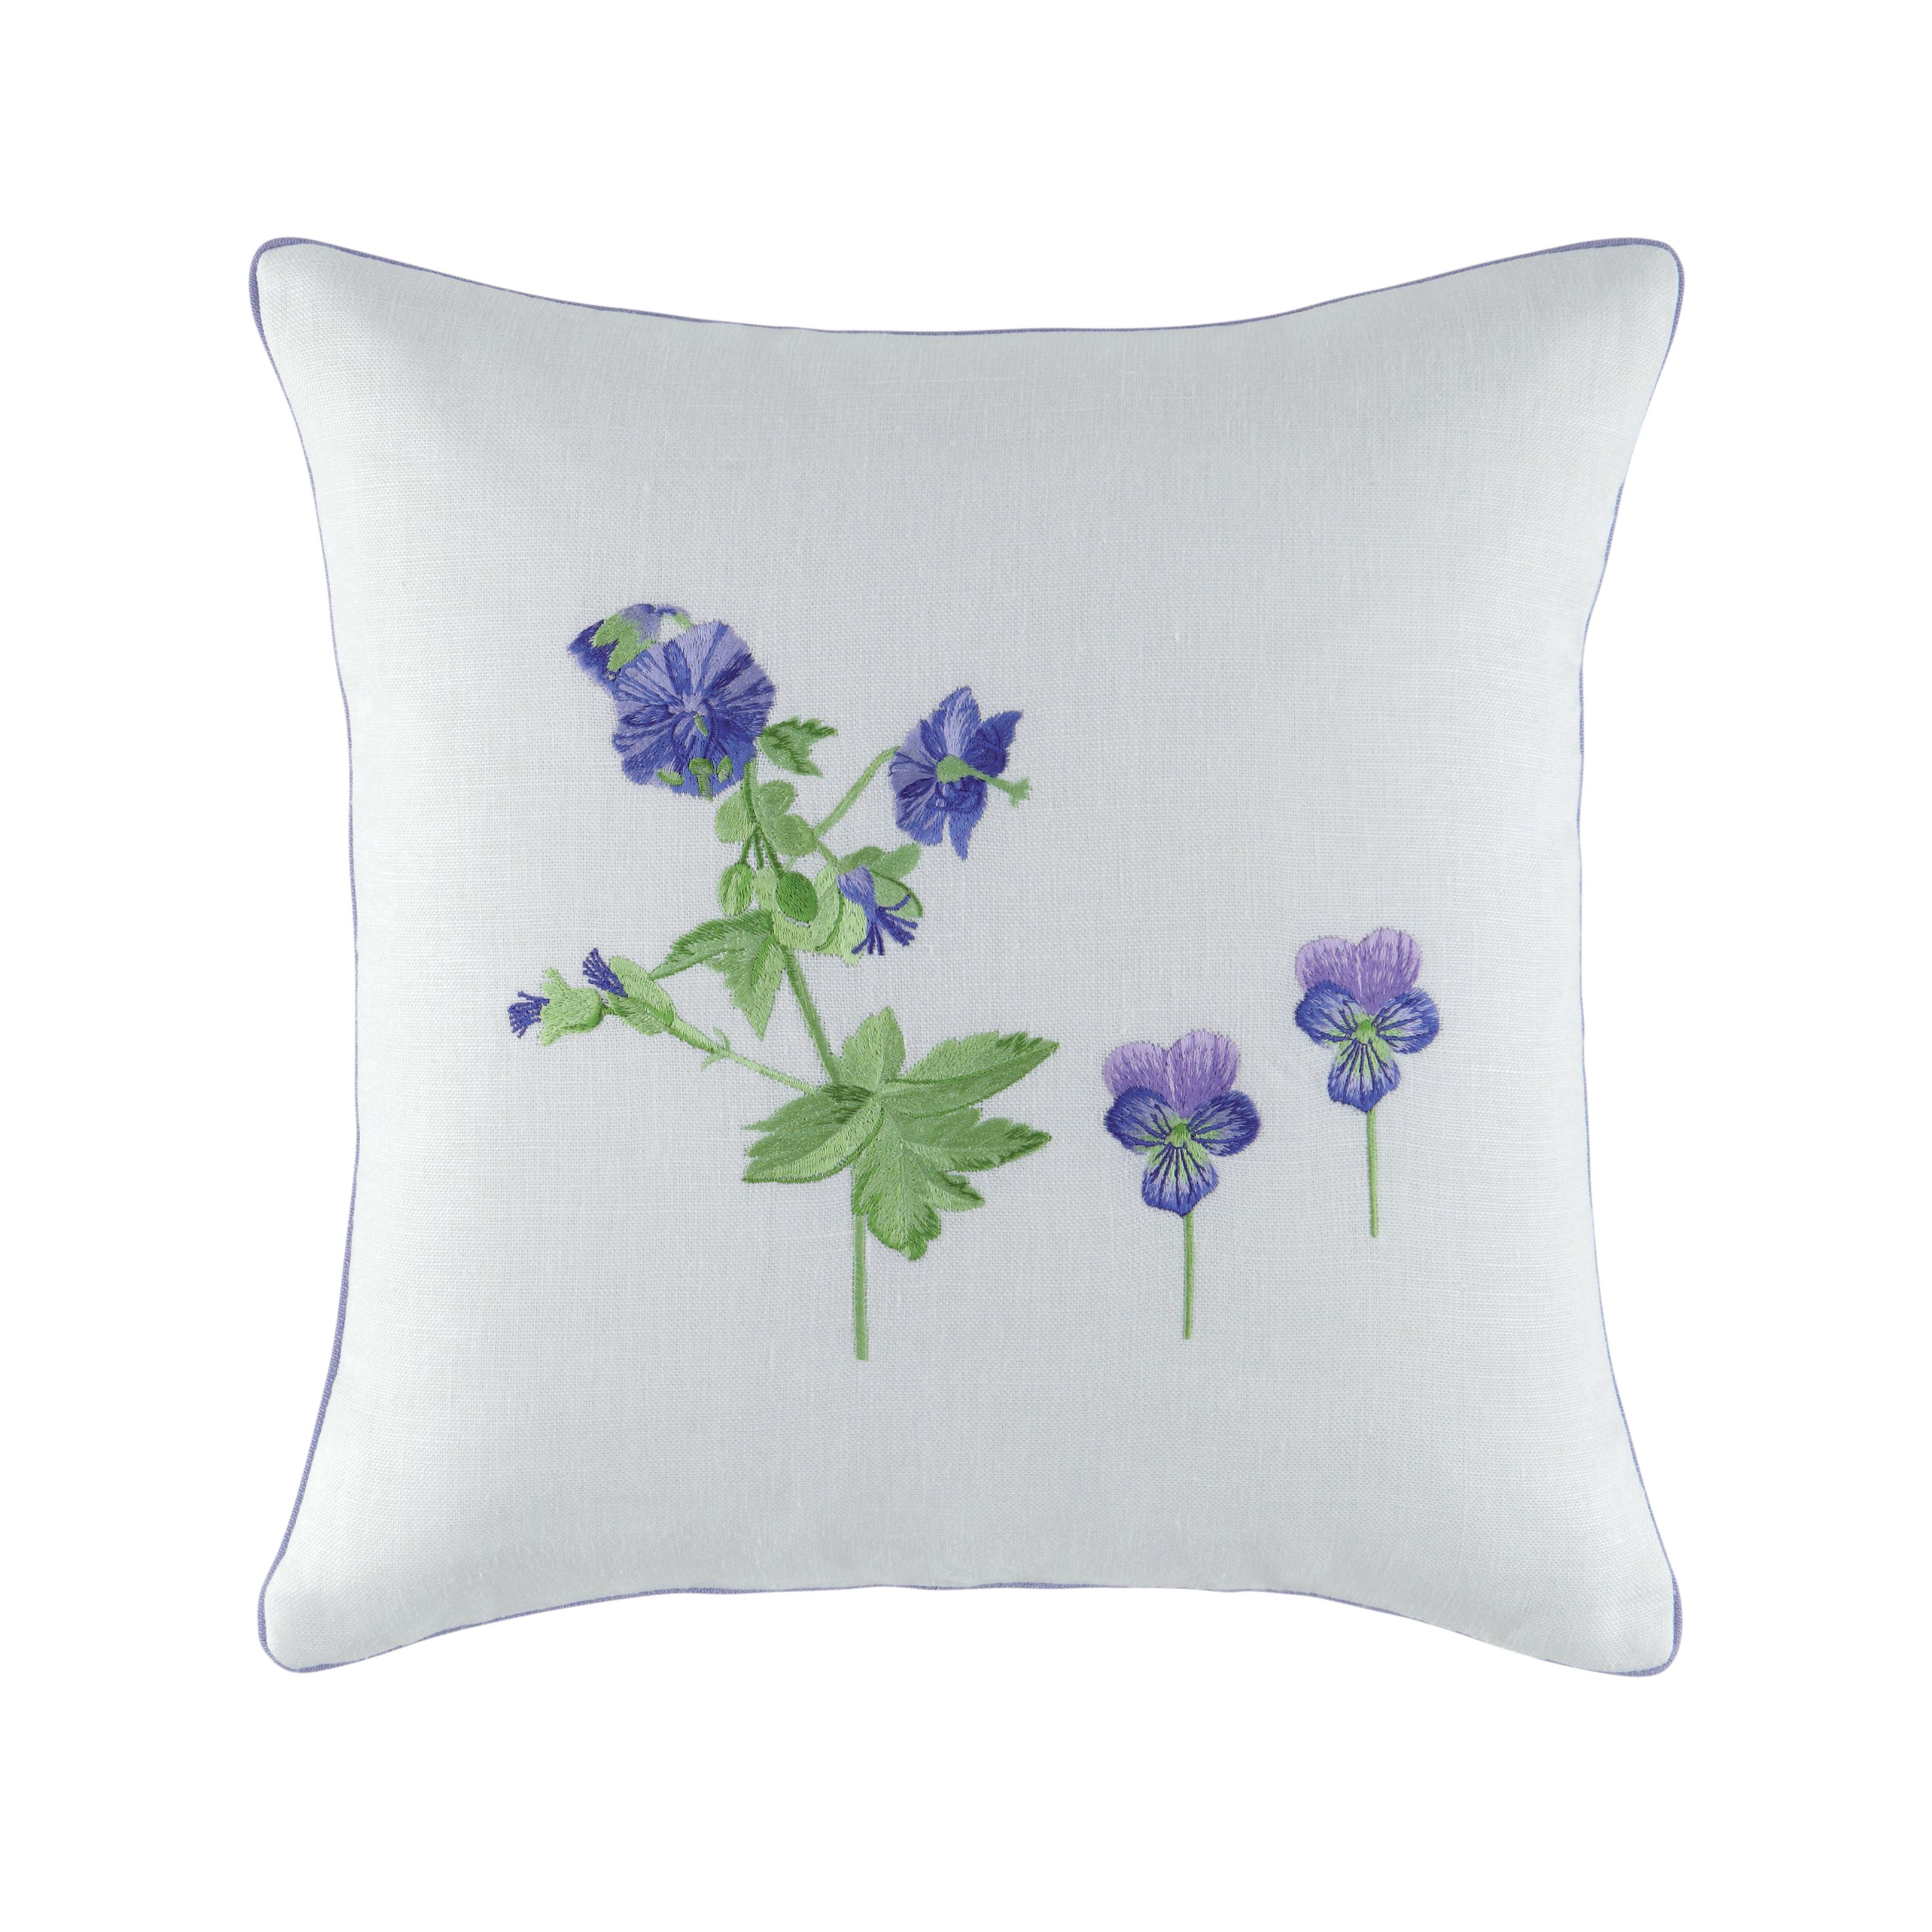 Lolableu bleu cushion cover 42x42*